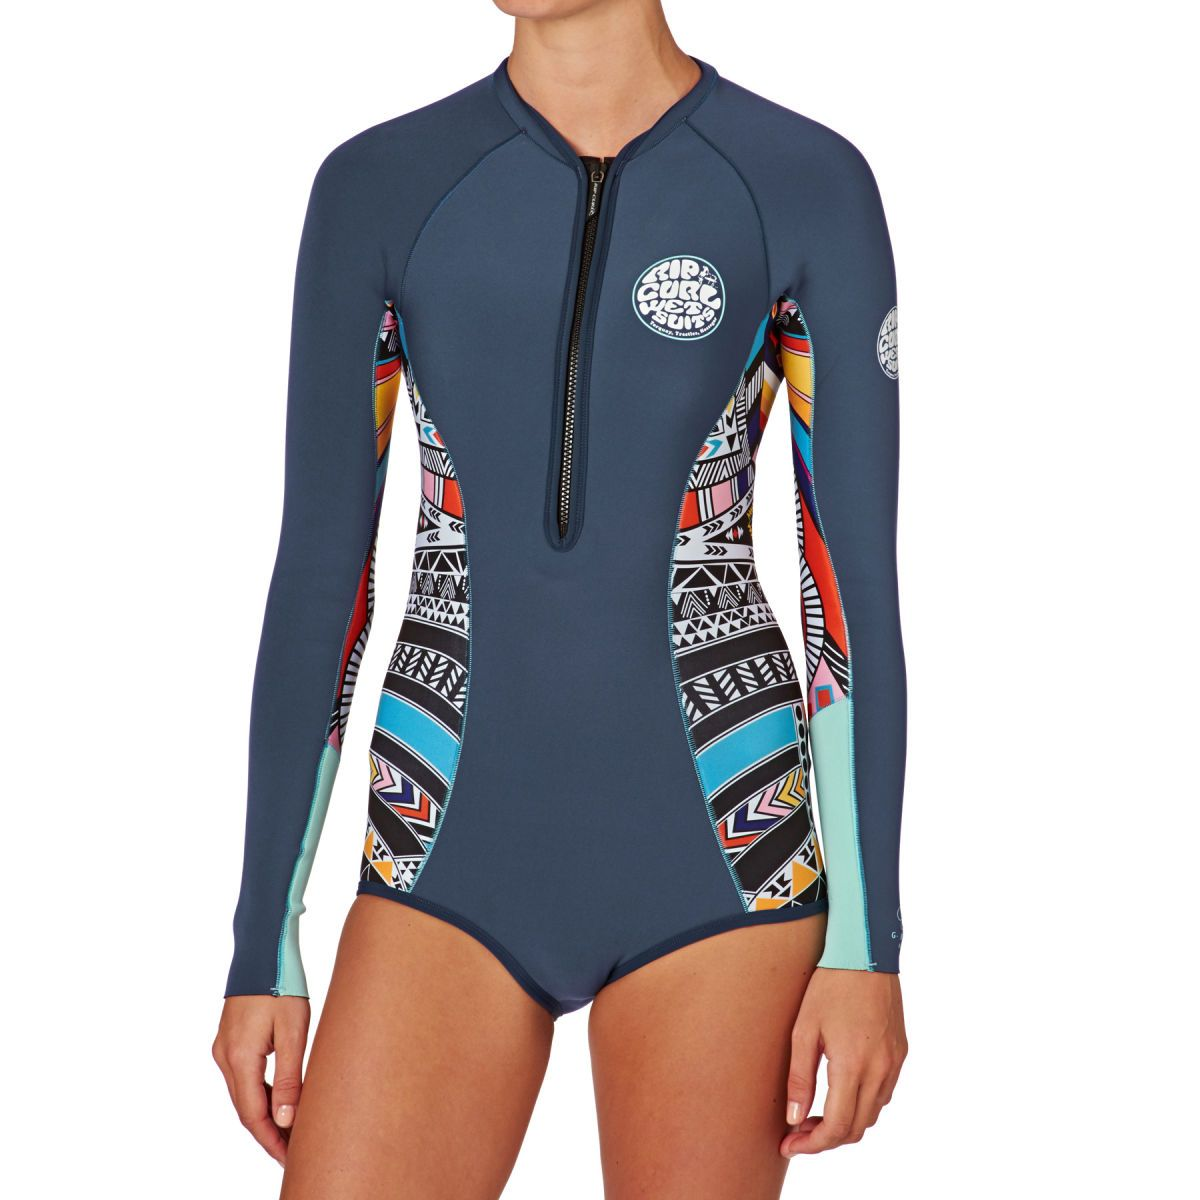 78358102e4 Rip Curl Wetsuits - Rip Curl Womens G Bomb 1mm Front Zip Long Sleeve Shorty  Wetsuit - Blue